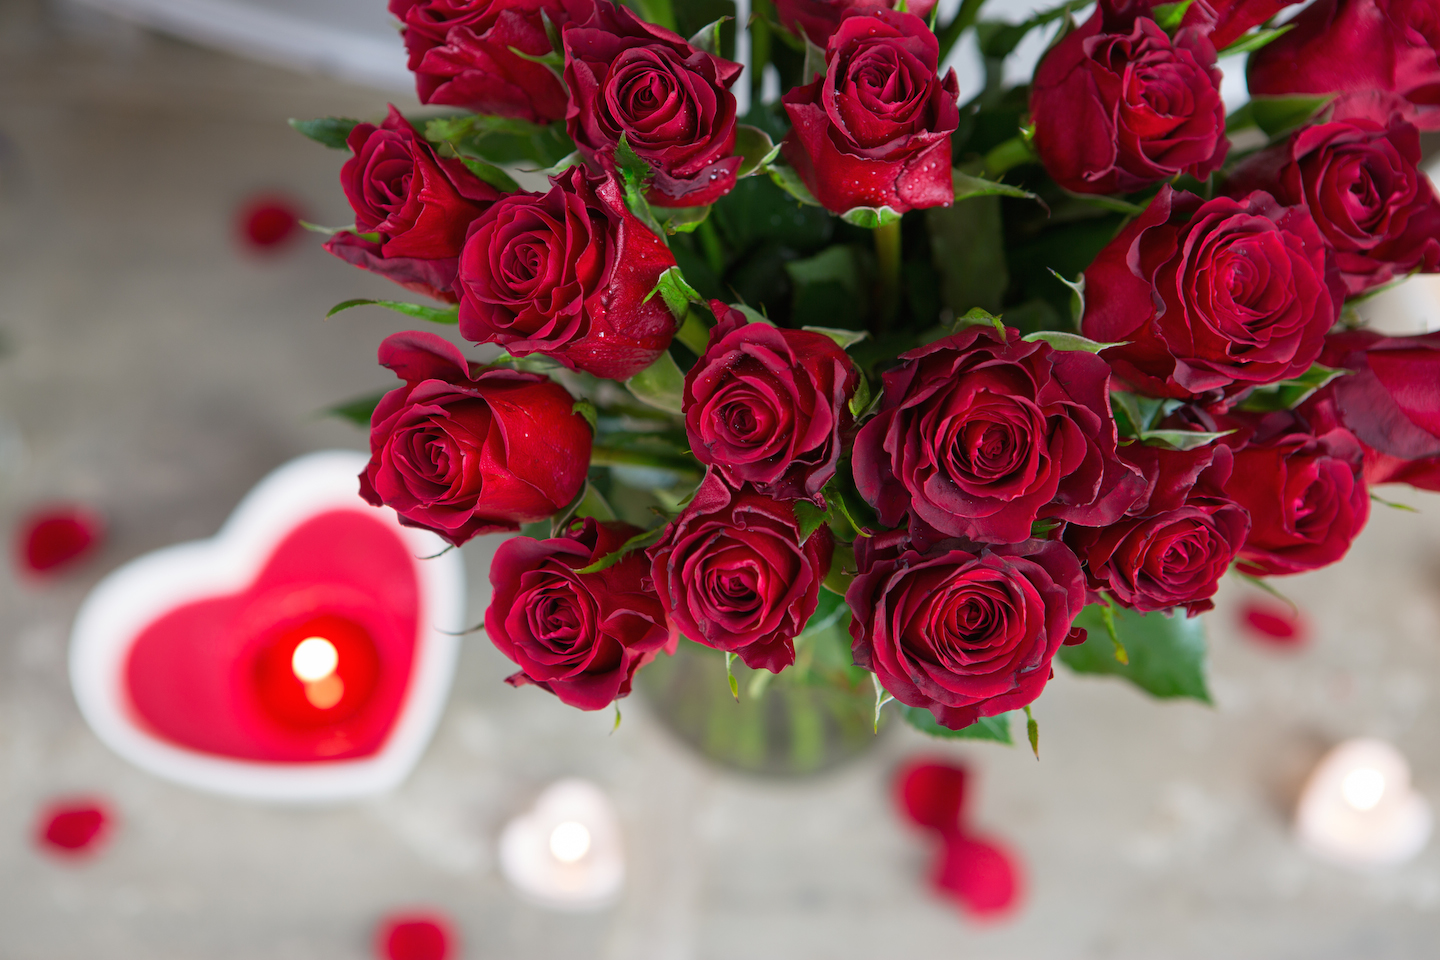 Get an exclusive Valentines Flowers Discount Code